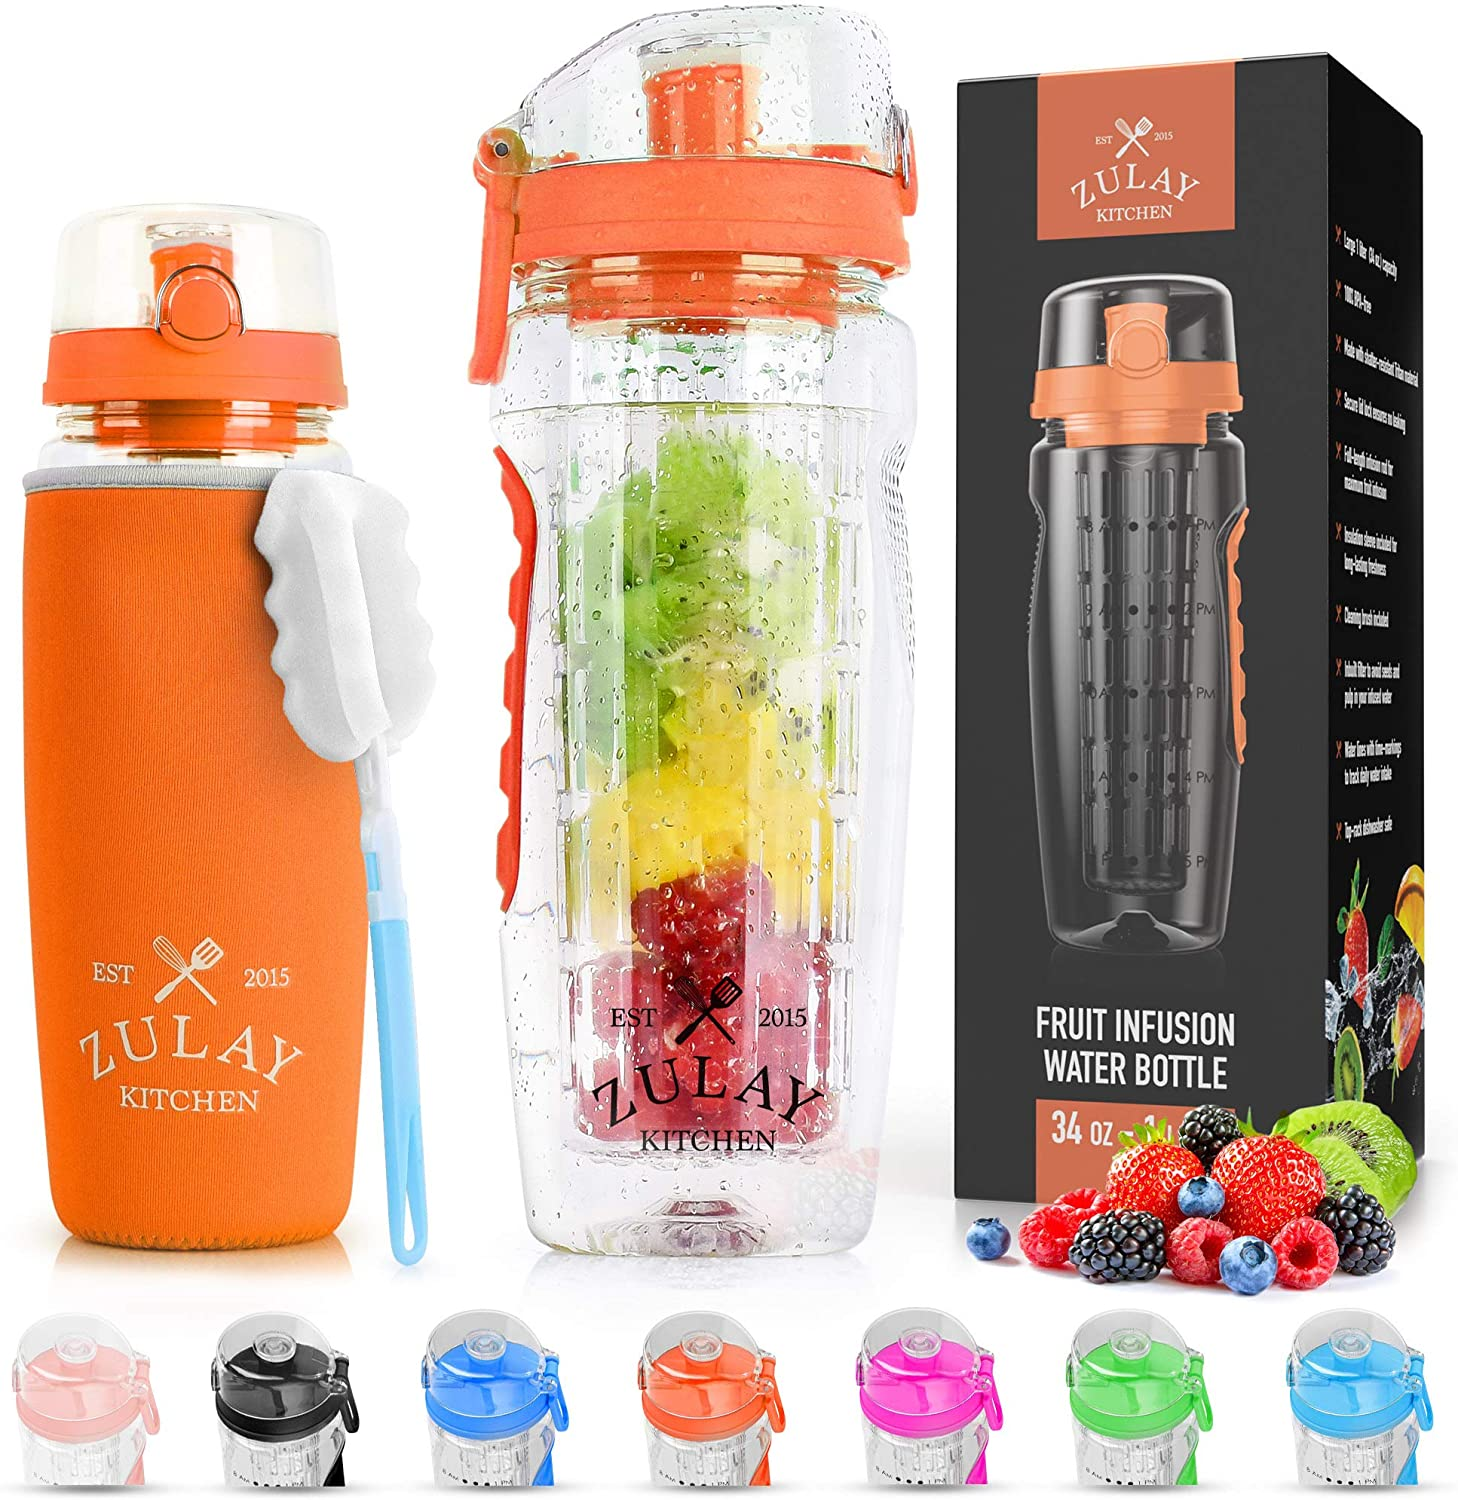 Zulay (34oz Capacity) Fruit Infuser Water Bottle With Sleeve - BPA Free Anti-Slip Grip & Flip Top Lid Infused Water Bottles for Women & Men - Water Infusion Bottle With Cleaning Brush